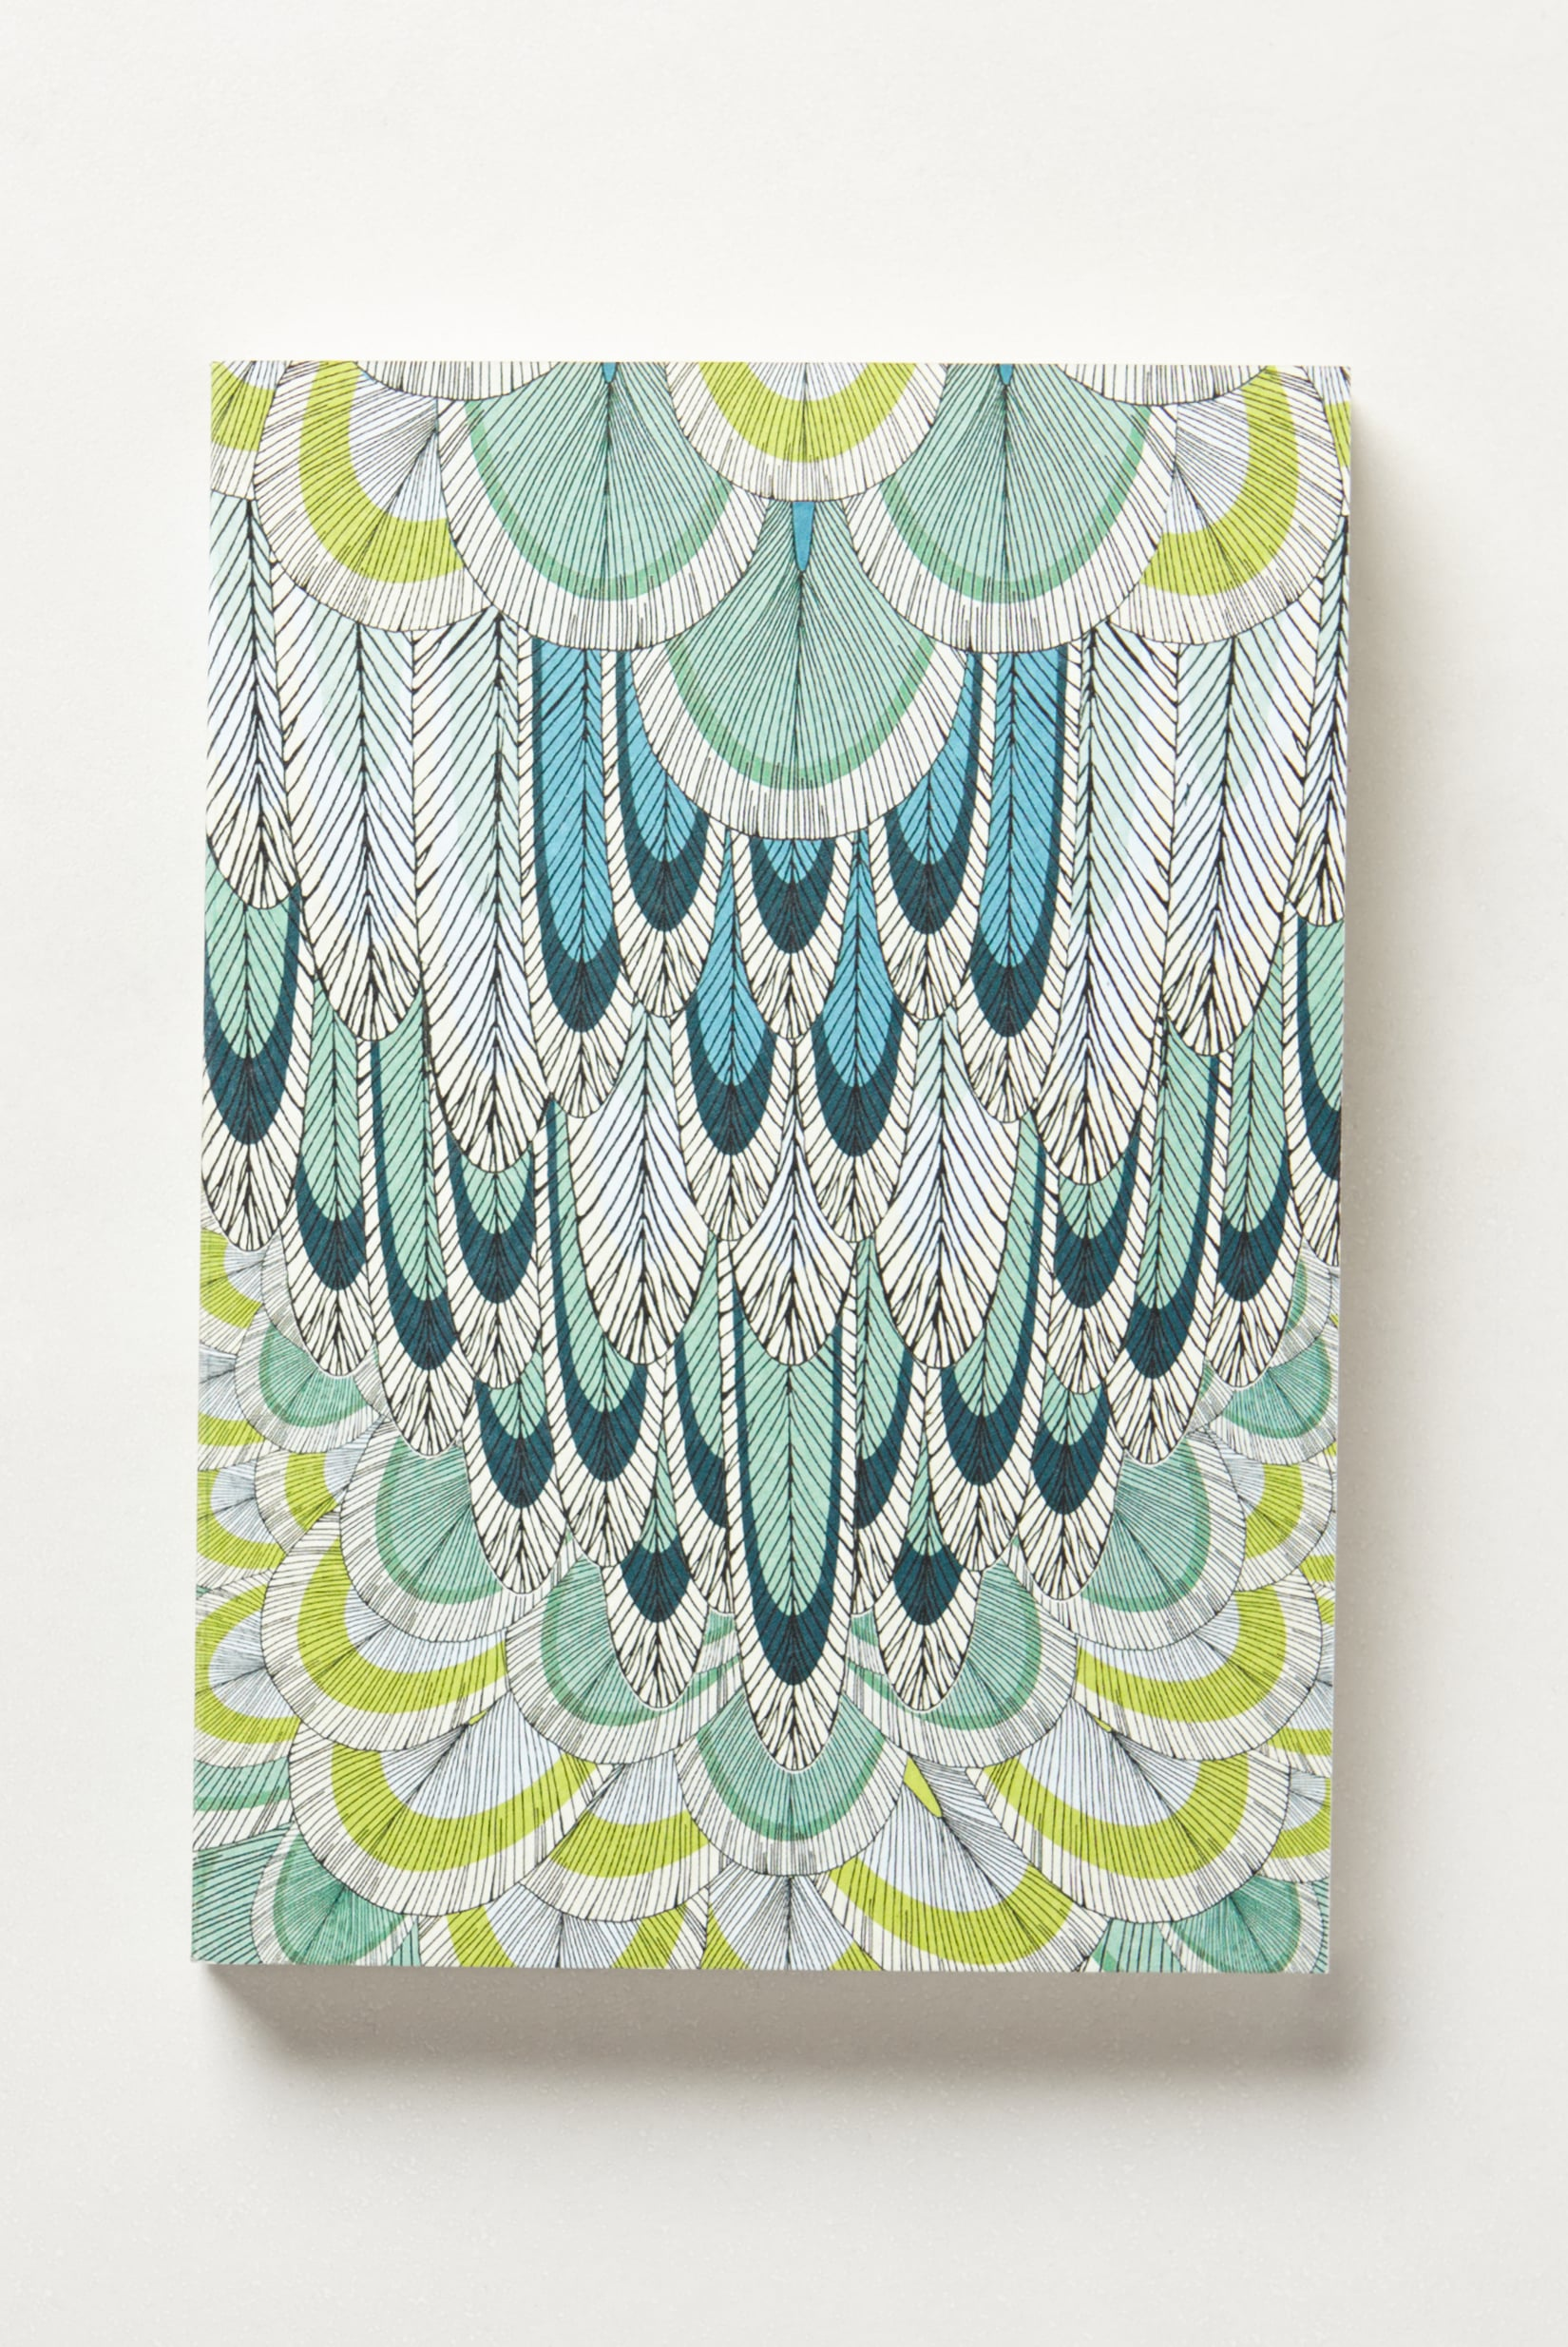 Mara Hoffman x Anthropologie Journal